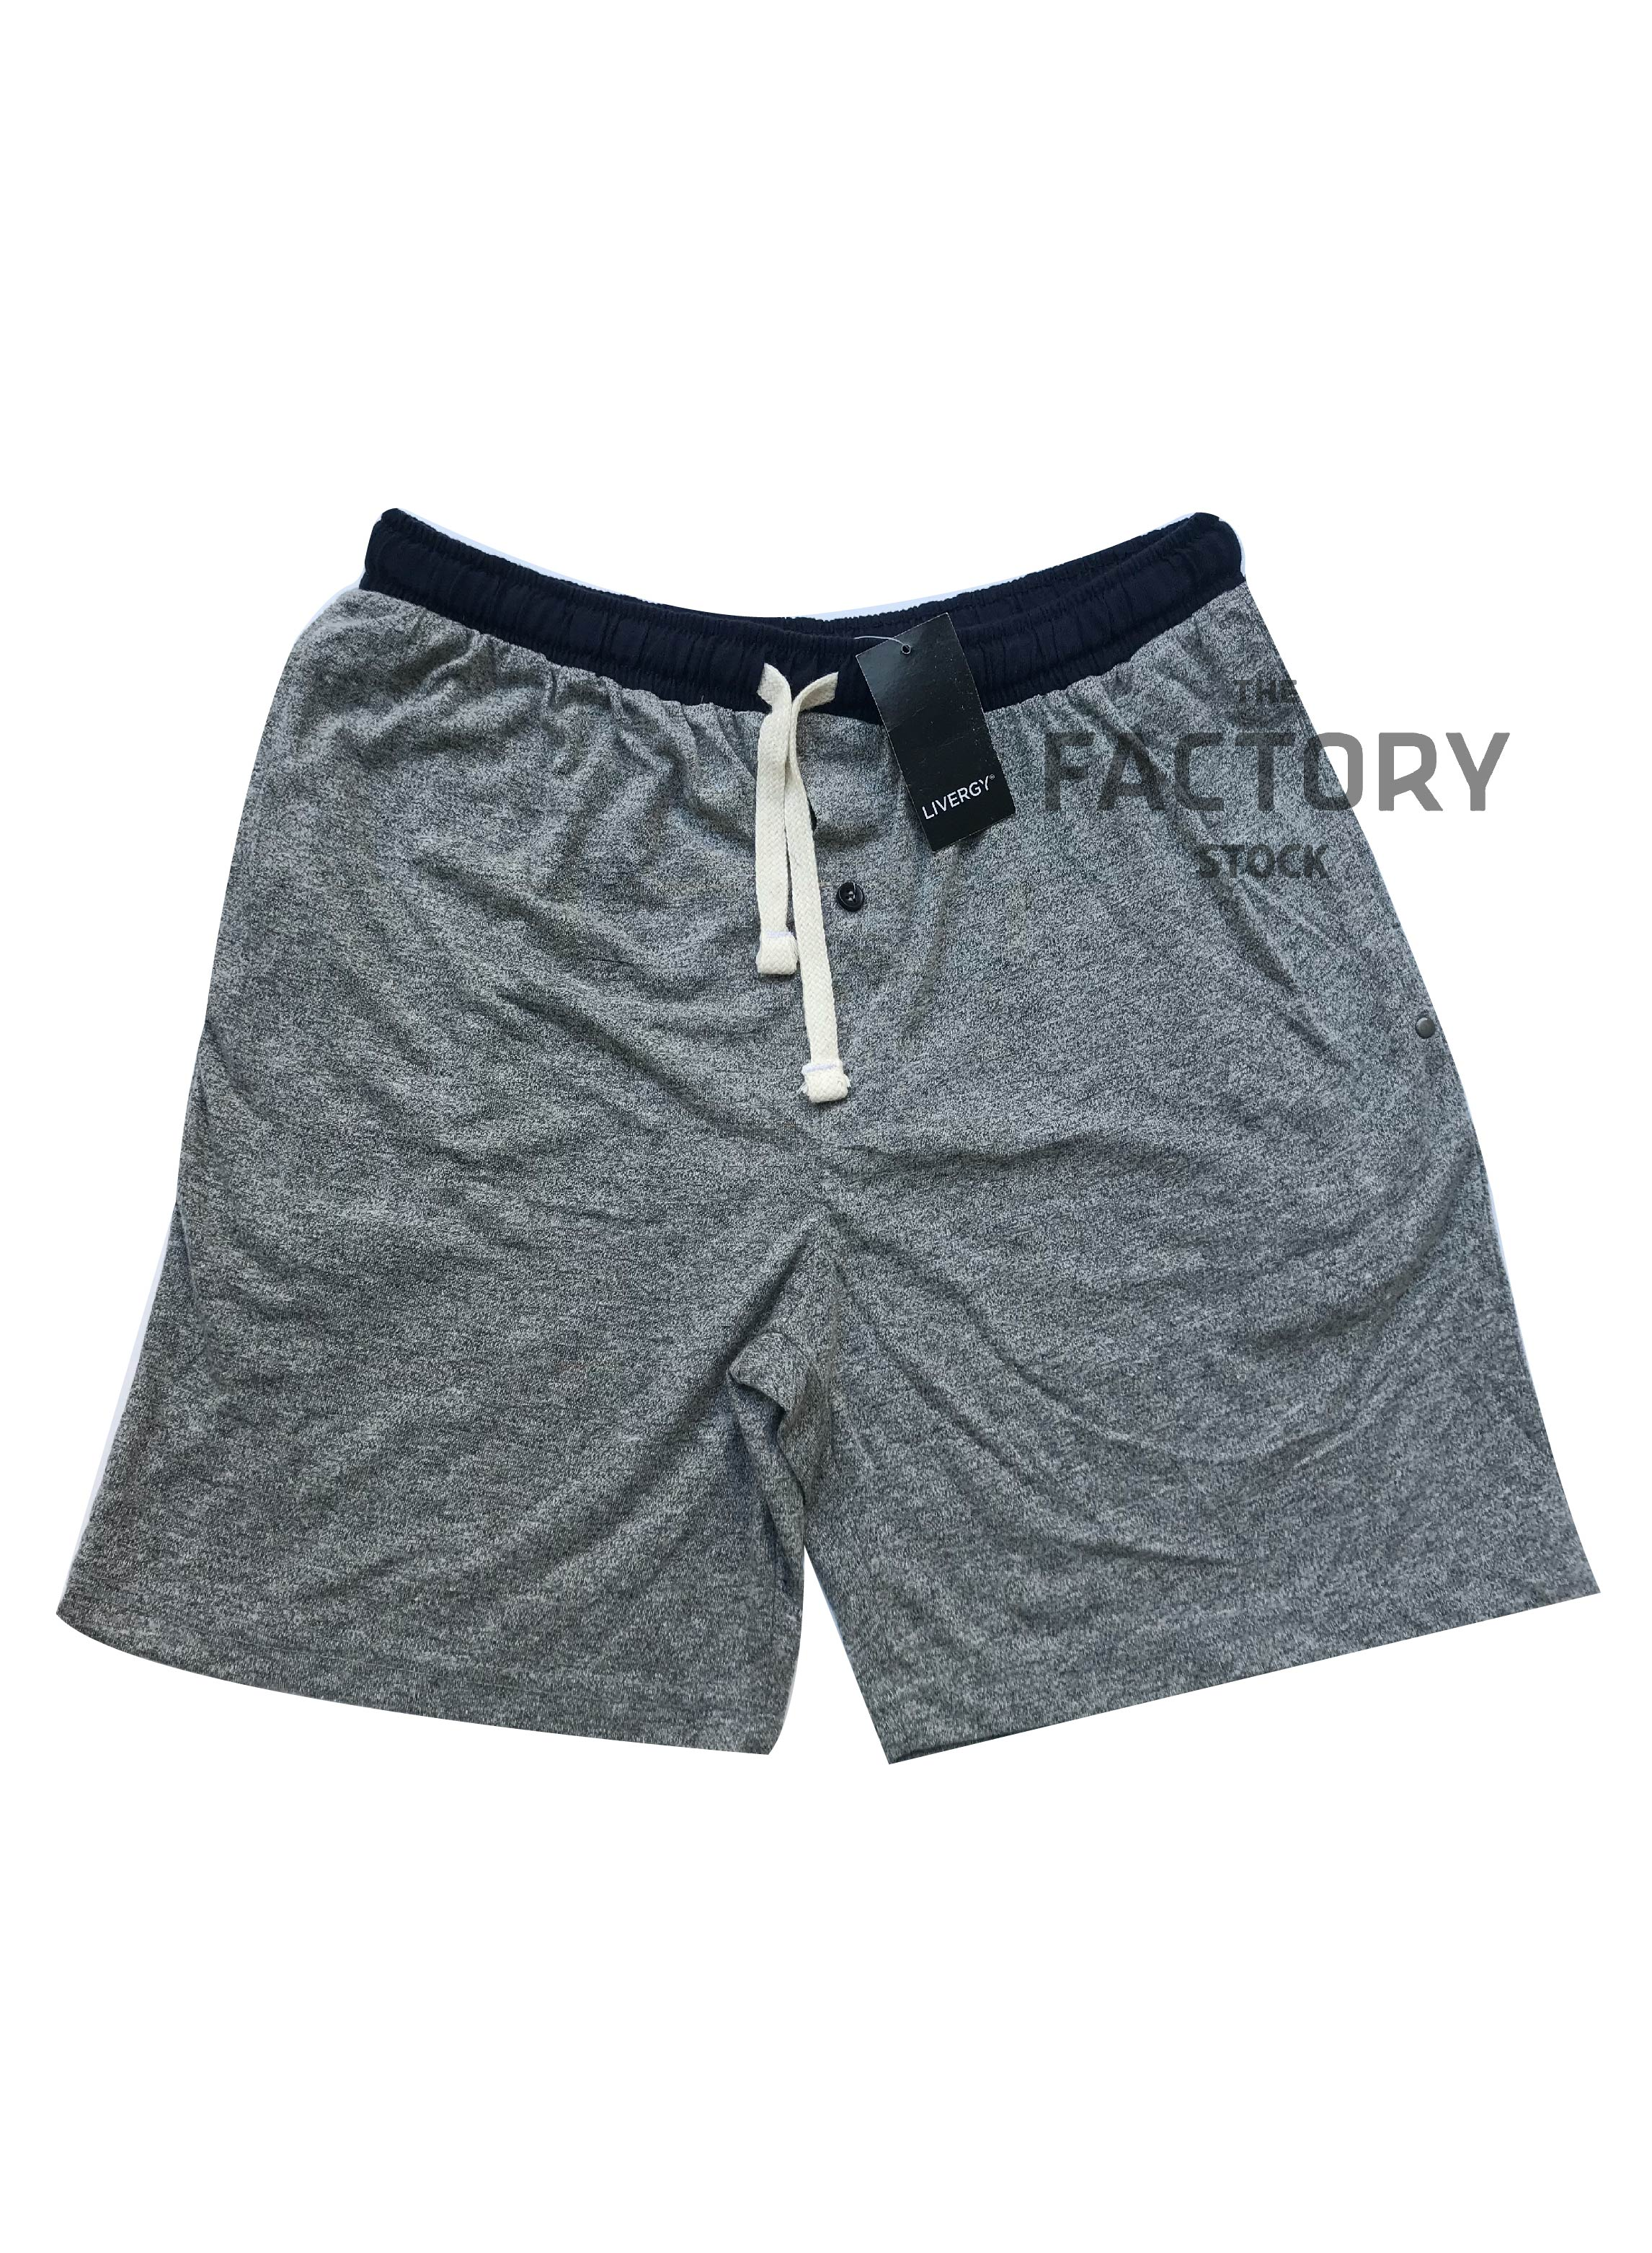 The Factory Stock - Comfortable Casual Single Jersey Shorts/Loungewear for Men